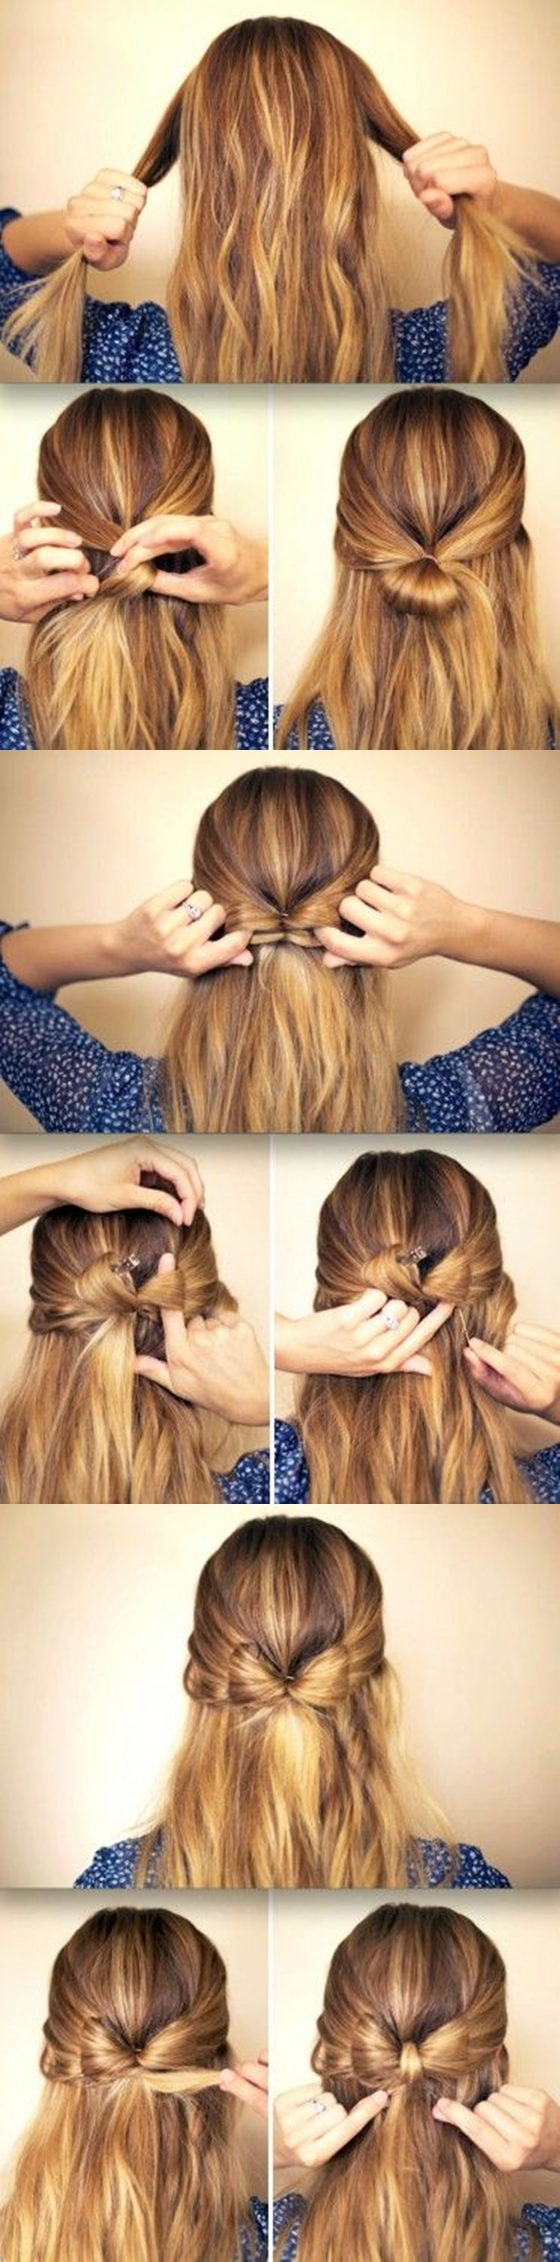 Elegant-Bow-Braided-Hairstyle M